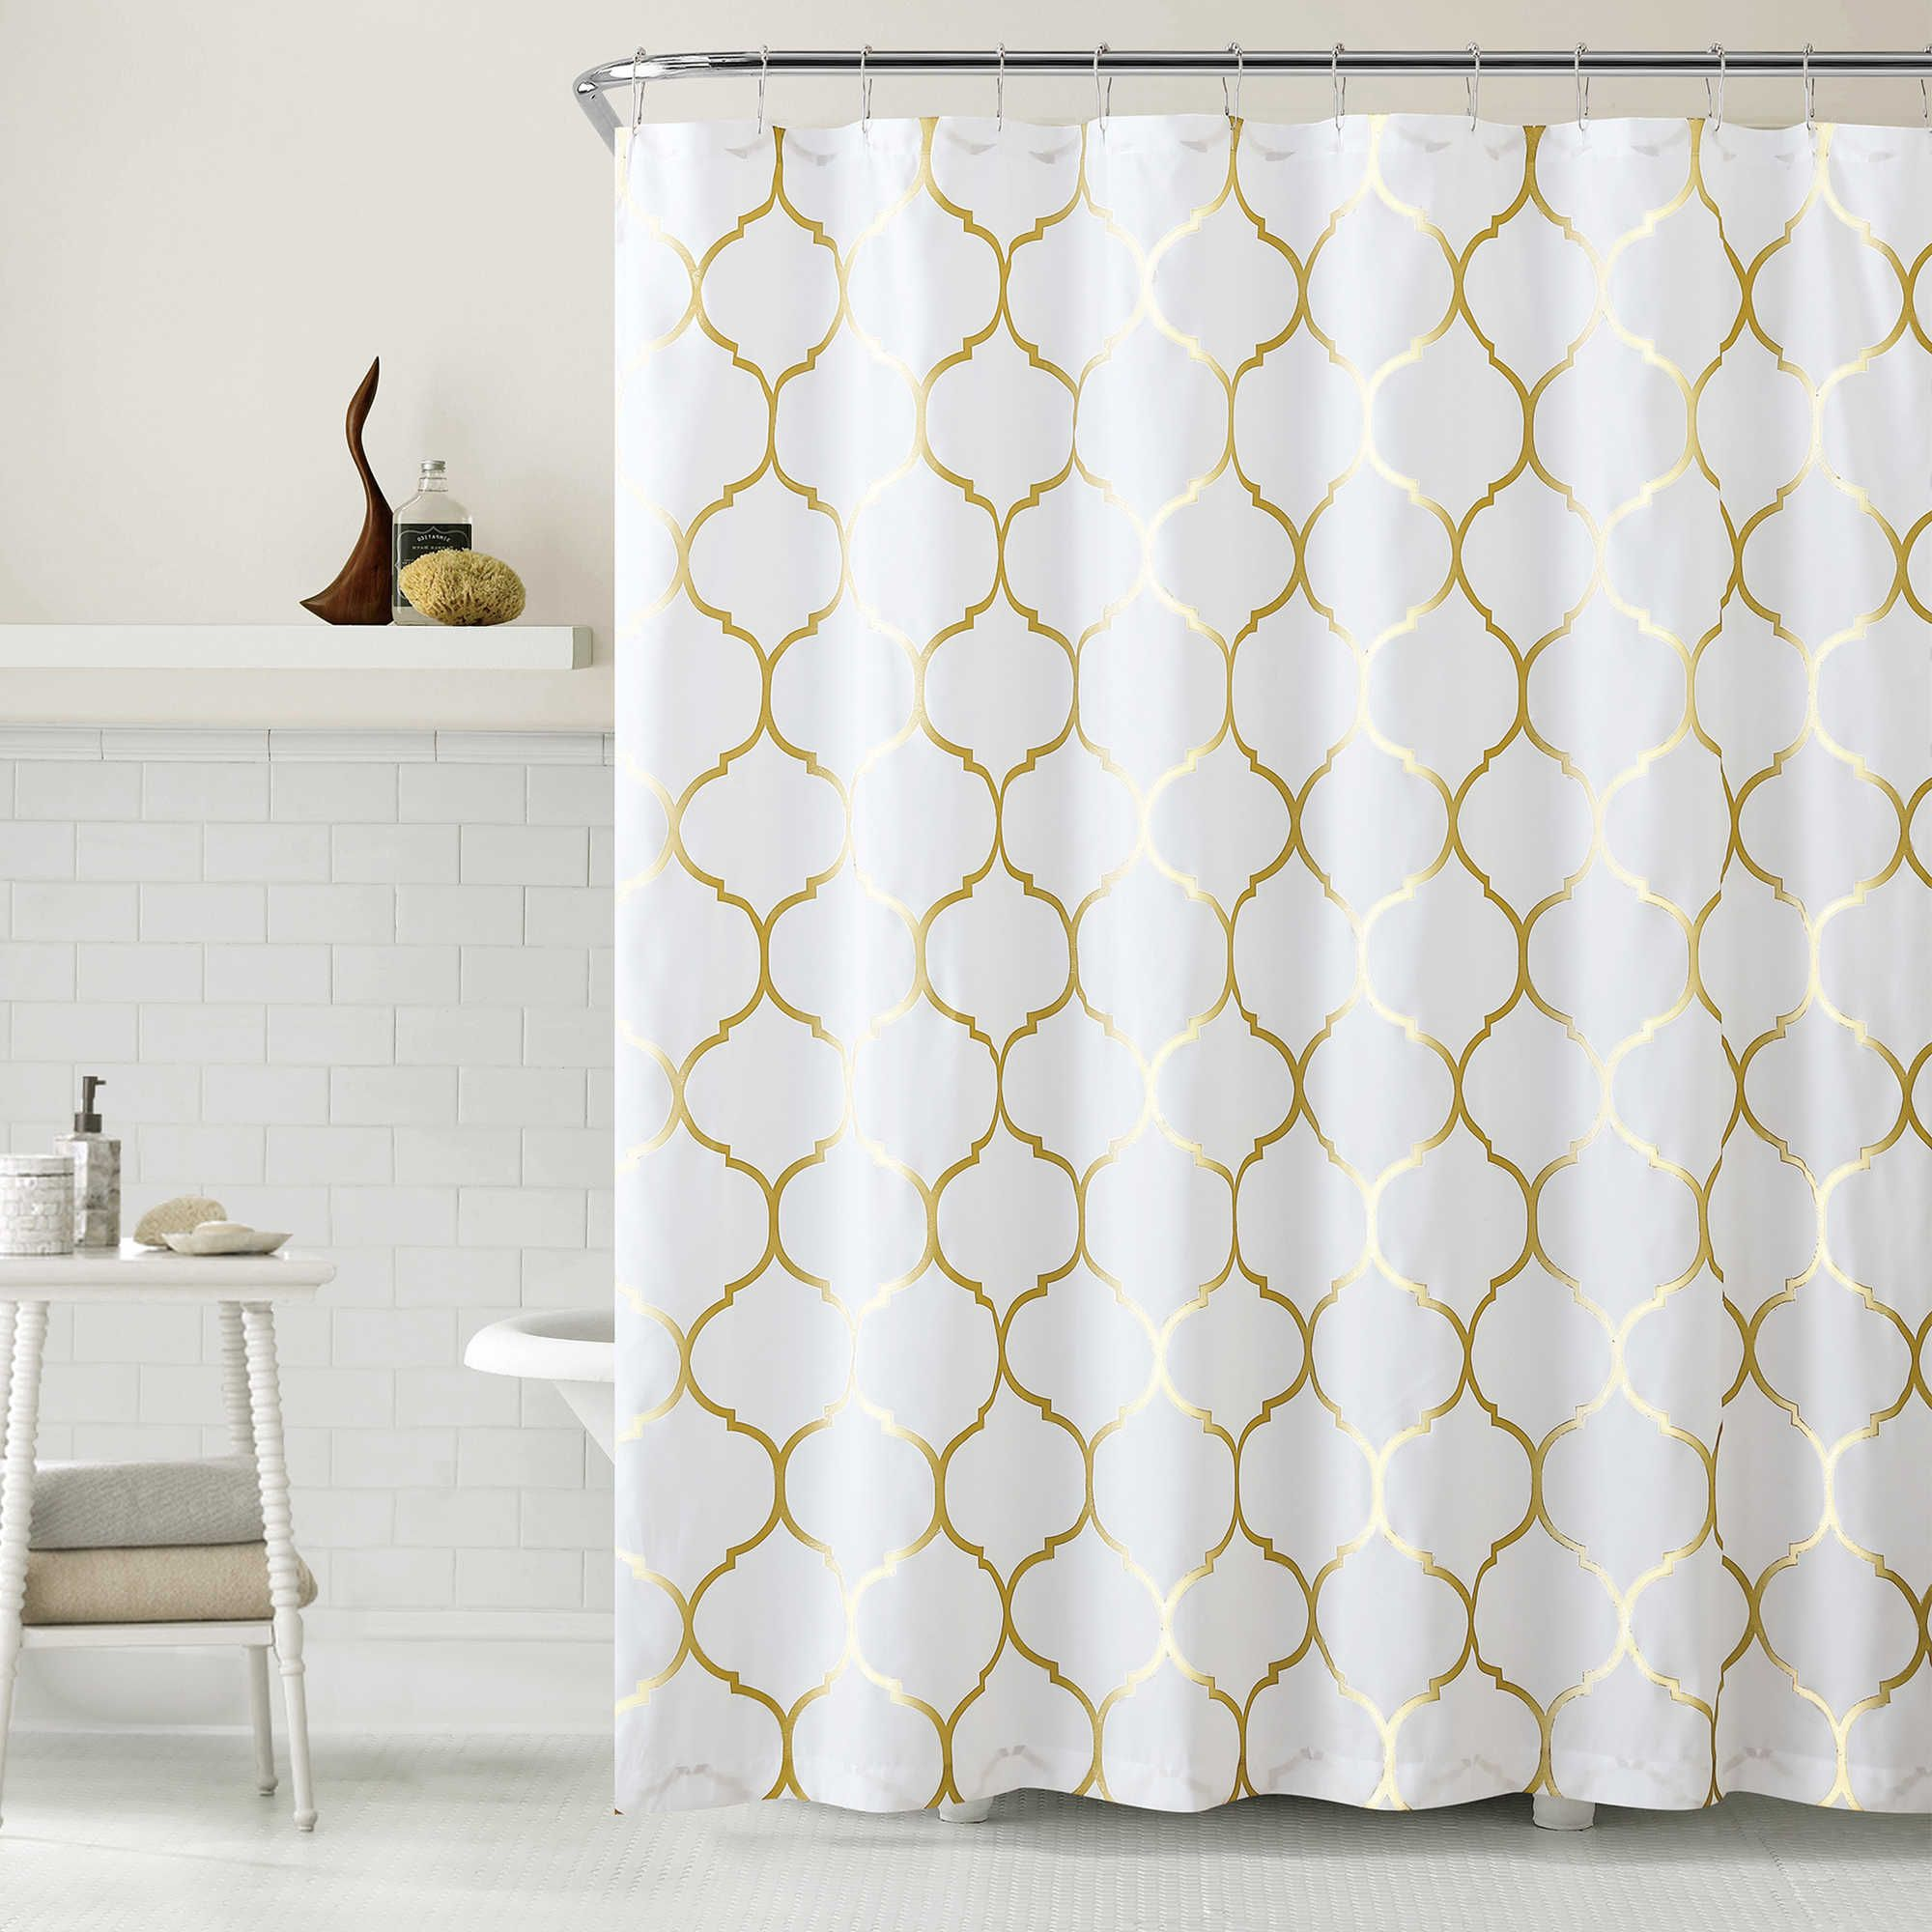 Vcny Metallic Ogee Shower Curtain In Goldwhite Decorating